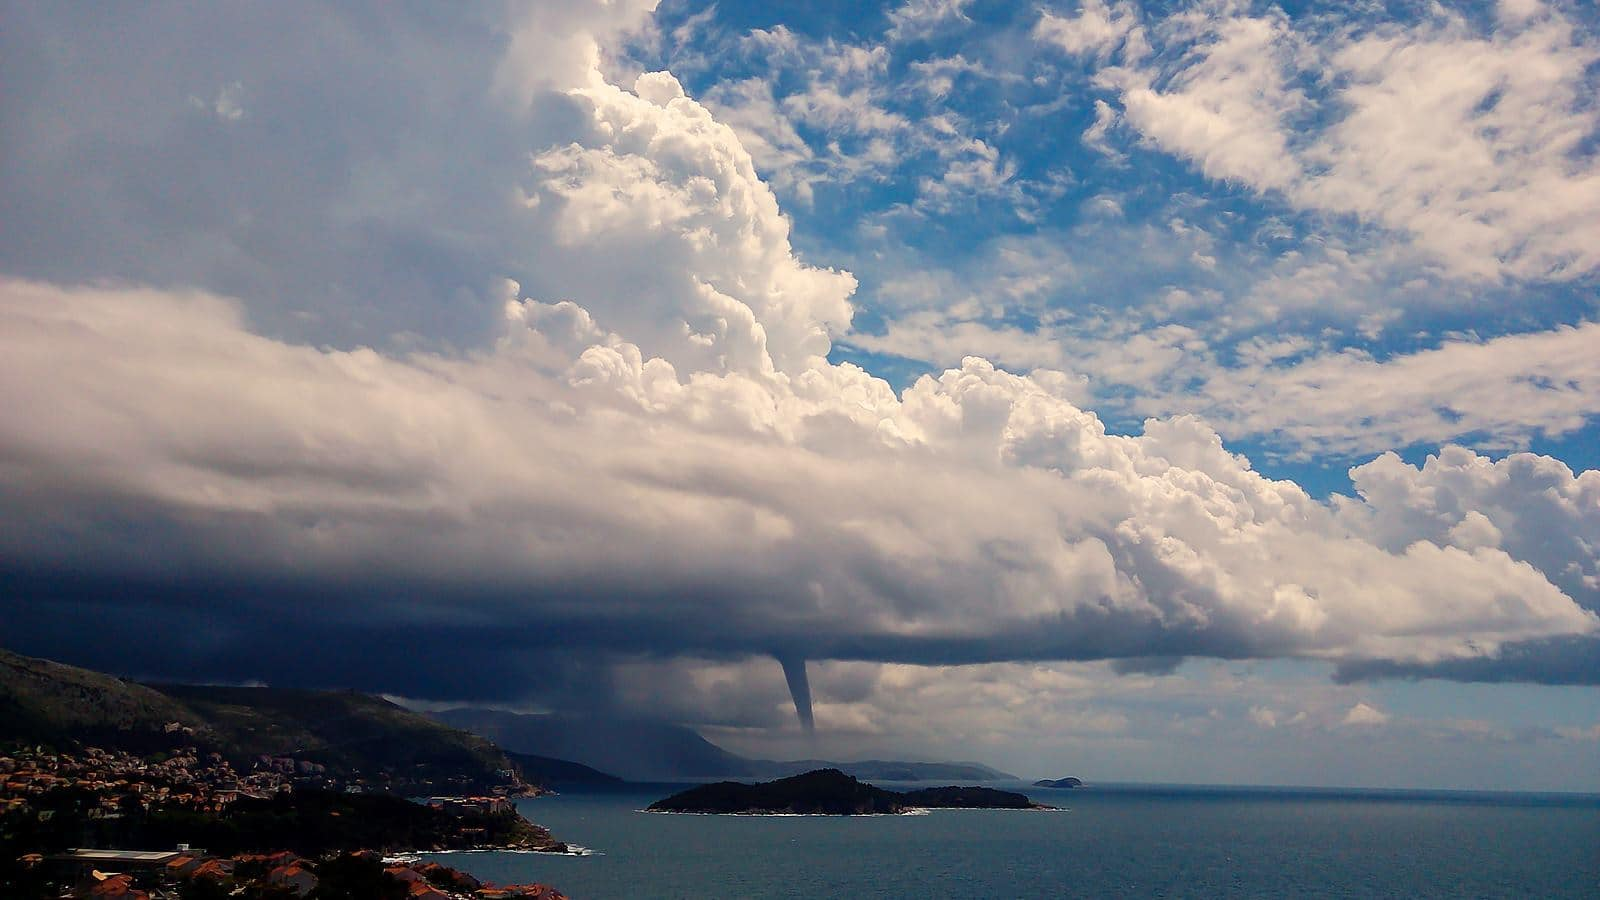 It s been a while since i posted anything this is a waterspout i shot while ago 30.05.2013. it has been siting on my hdd for a while.